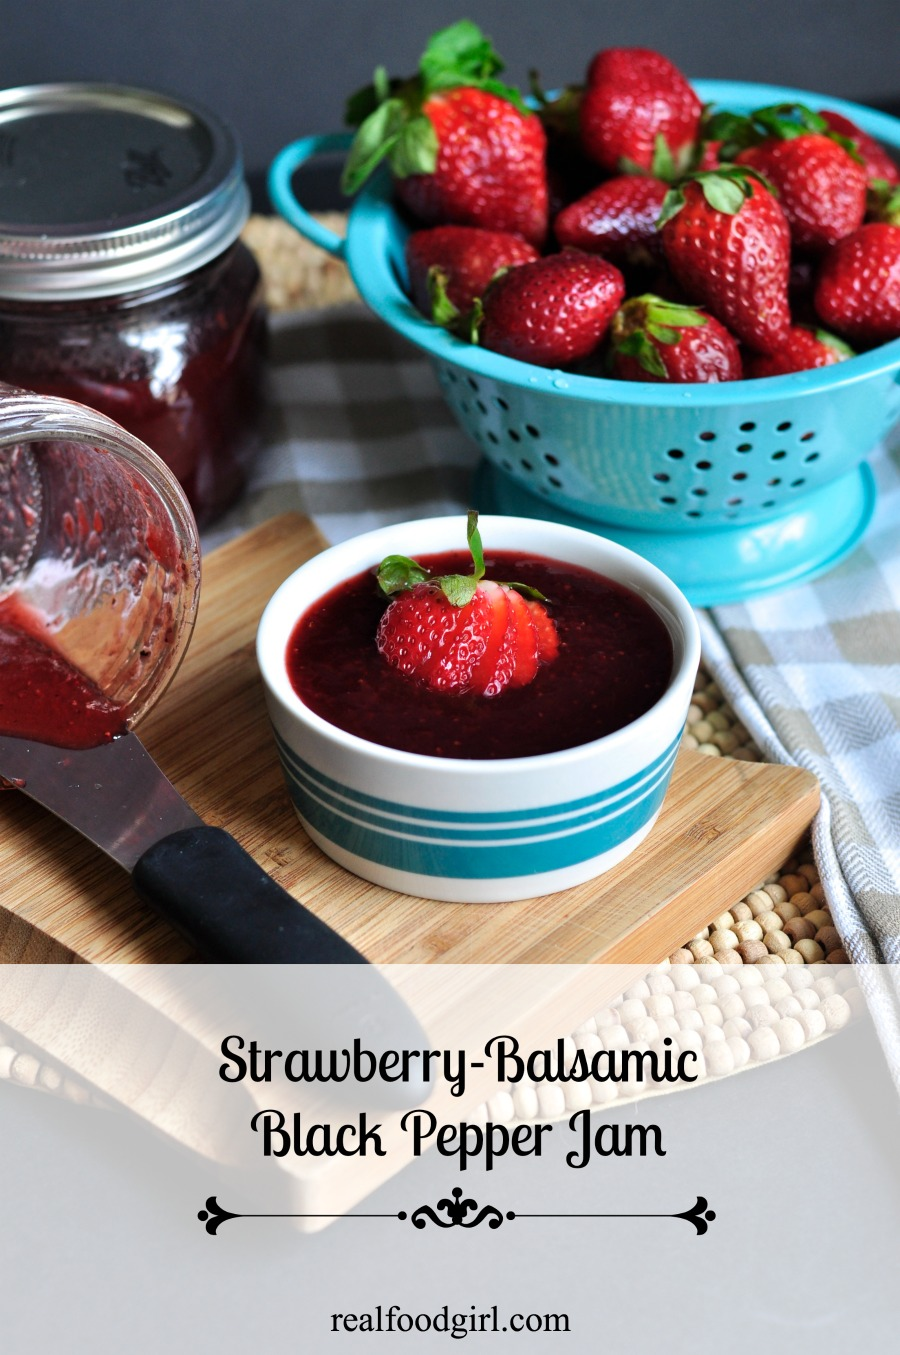 Strawberry Balsamic Black Pepper Jam by Real Food Girl: Unmodified